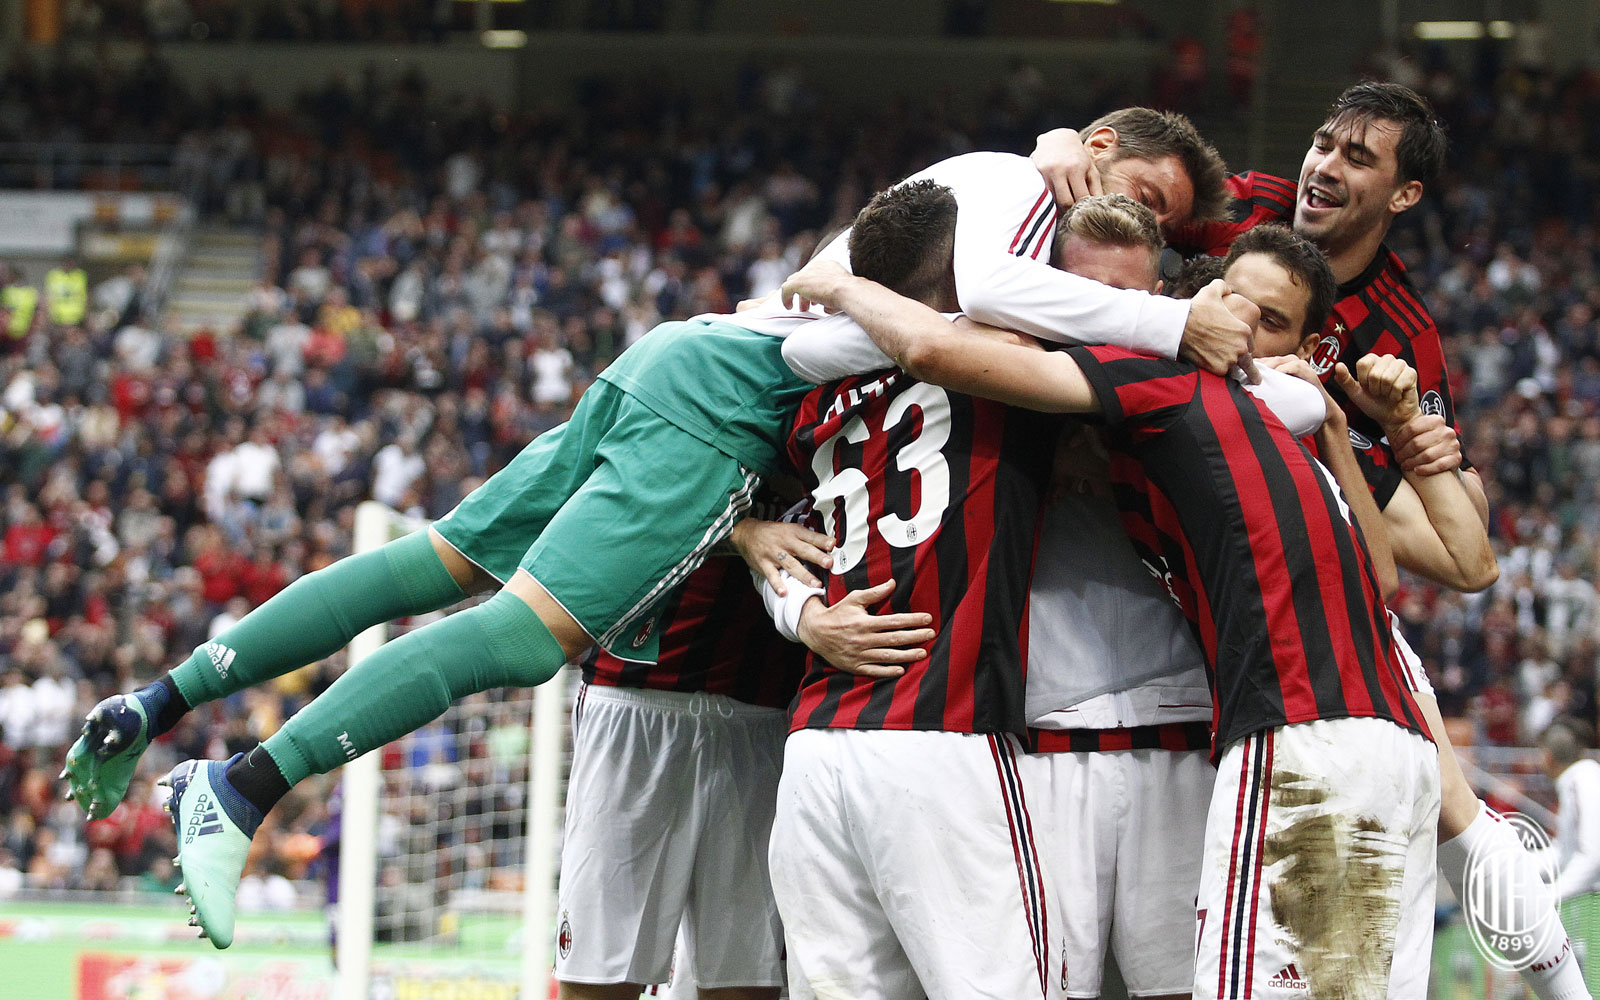 Marco Storari, Patrick Cutrone, Ignazio Abate, Giacomo Bonaventura, Alessio Romagnoli and Nikola Kalinić celebrating during Milan-Fiorentina at Stadio San Siro on May 20, 2018. (@acmilan.com)